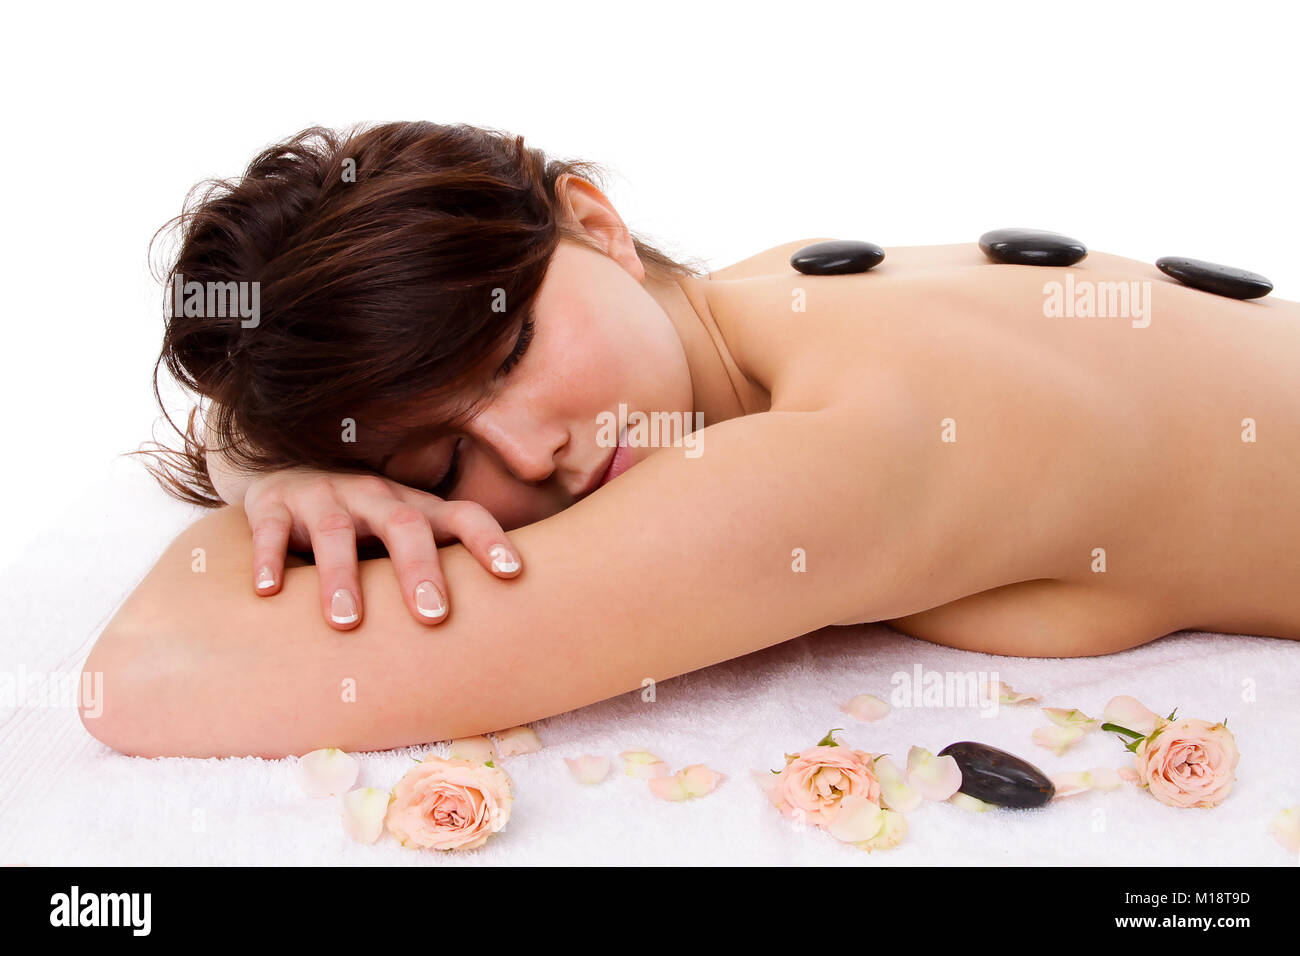 Woman - spa treatment concept isolated on white background - Stock Image